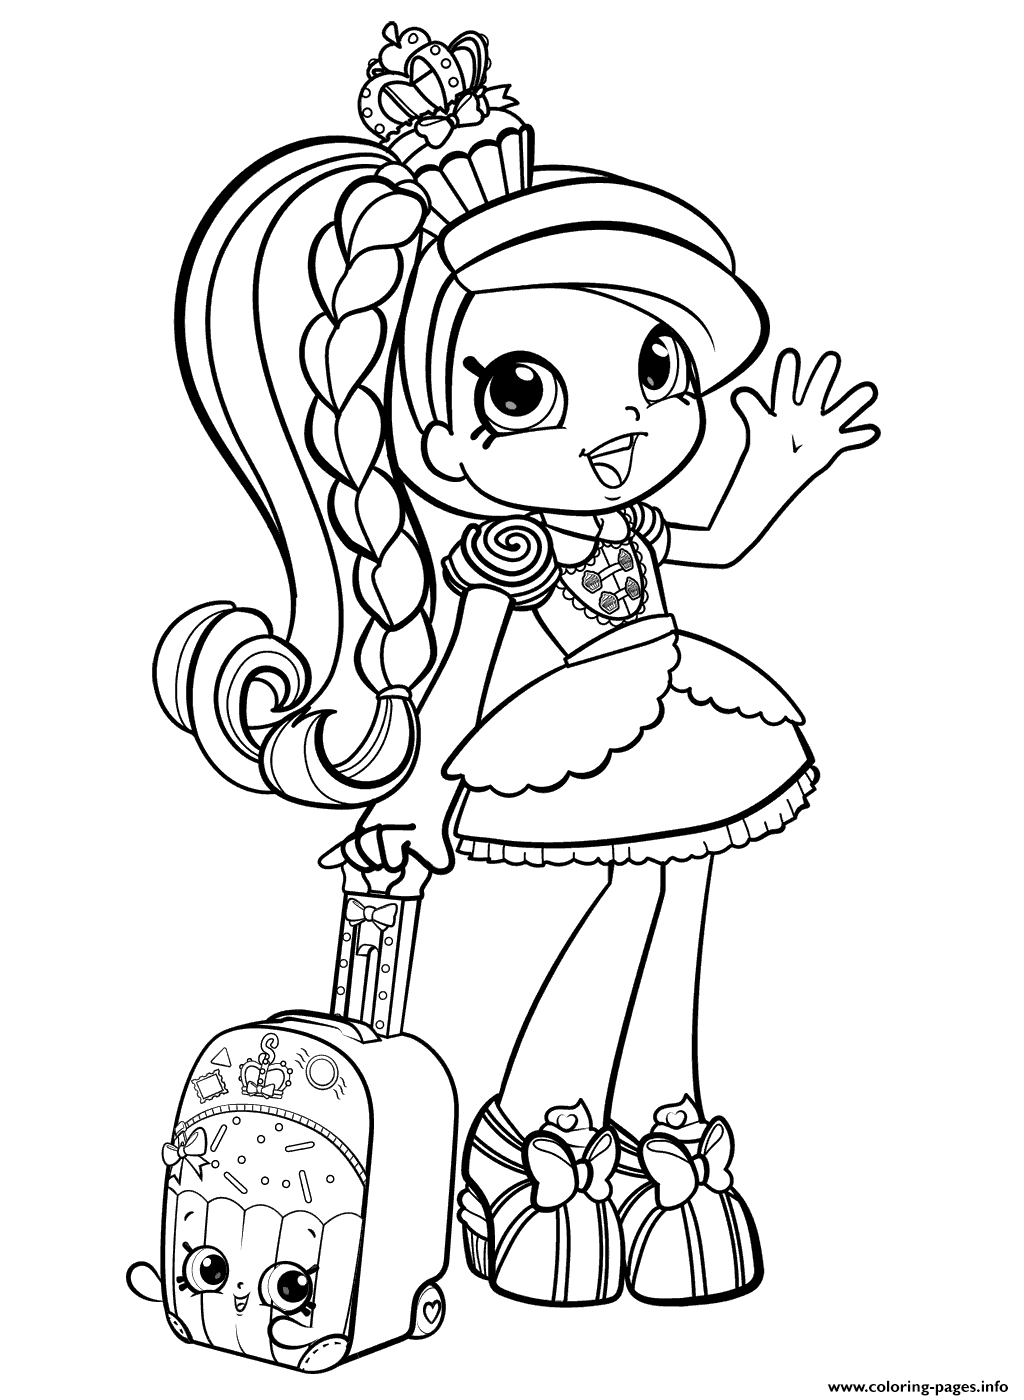 Grab Your Fresh Coloring Pages Shopkins Free Full Page Here Https Geth Unicorn Coloring Pages Shopkins Coloring Pages Free Printable Coloring Pages For Girls